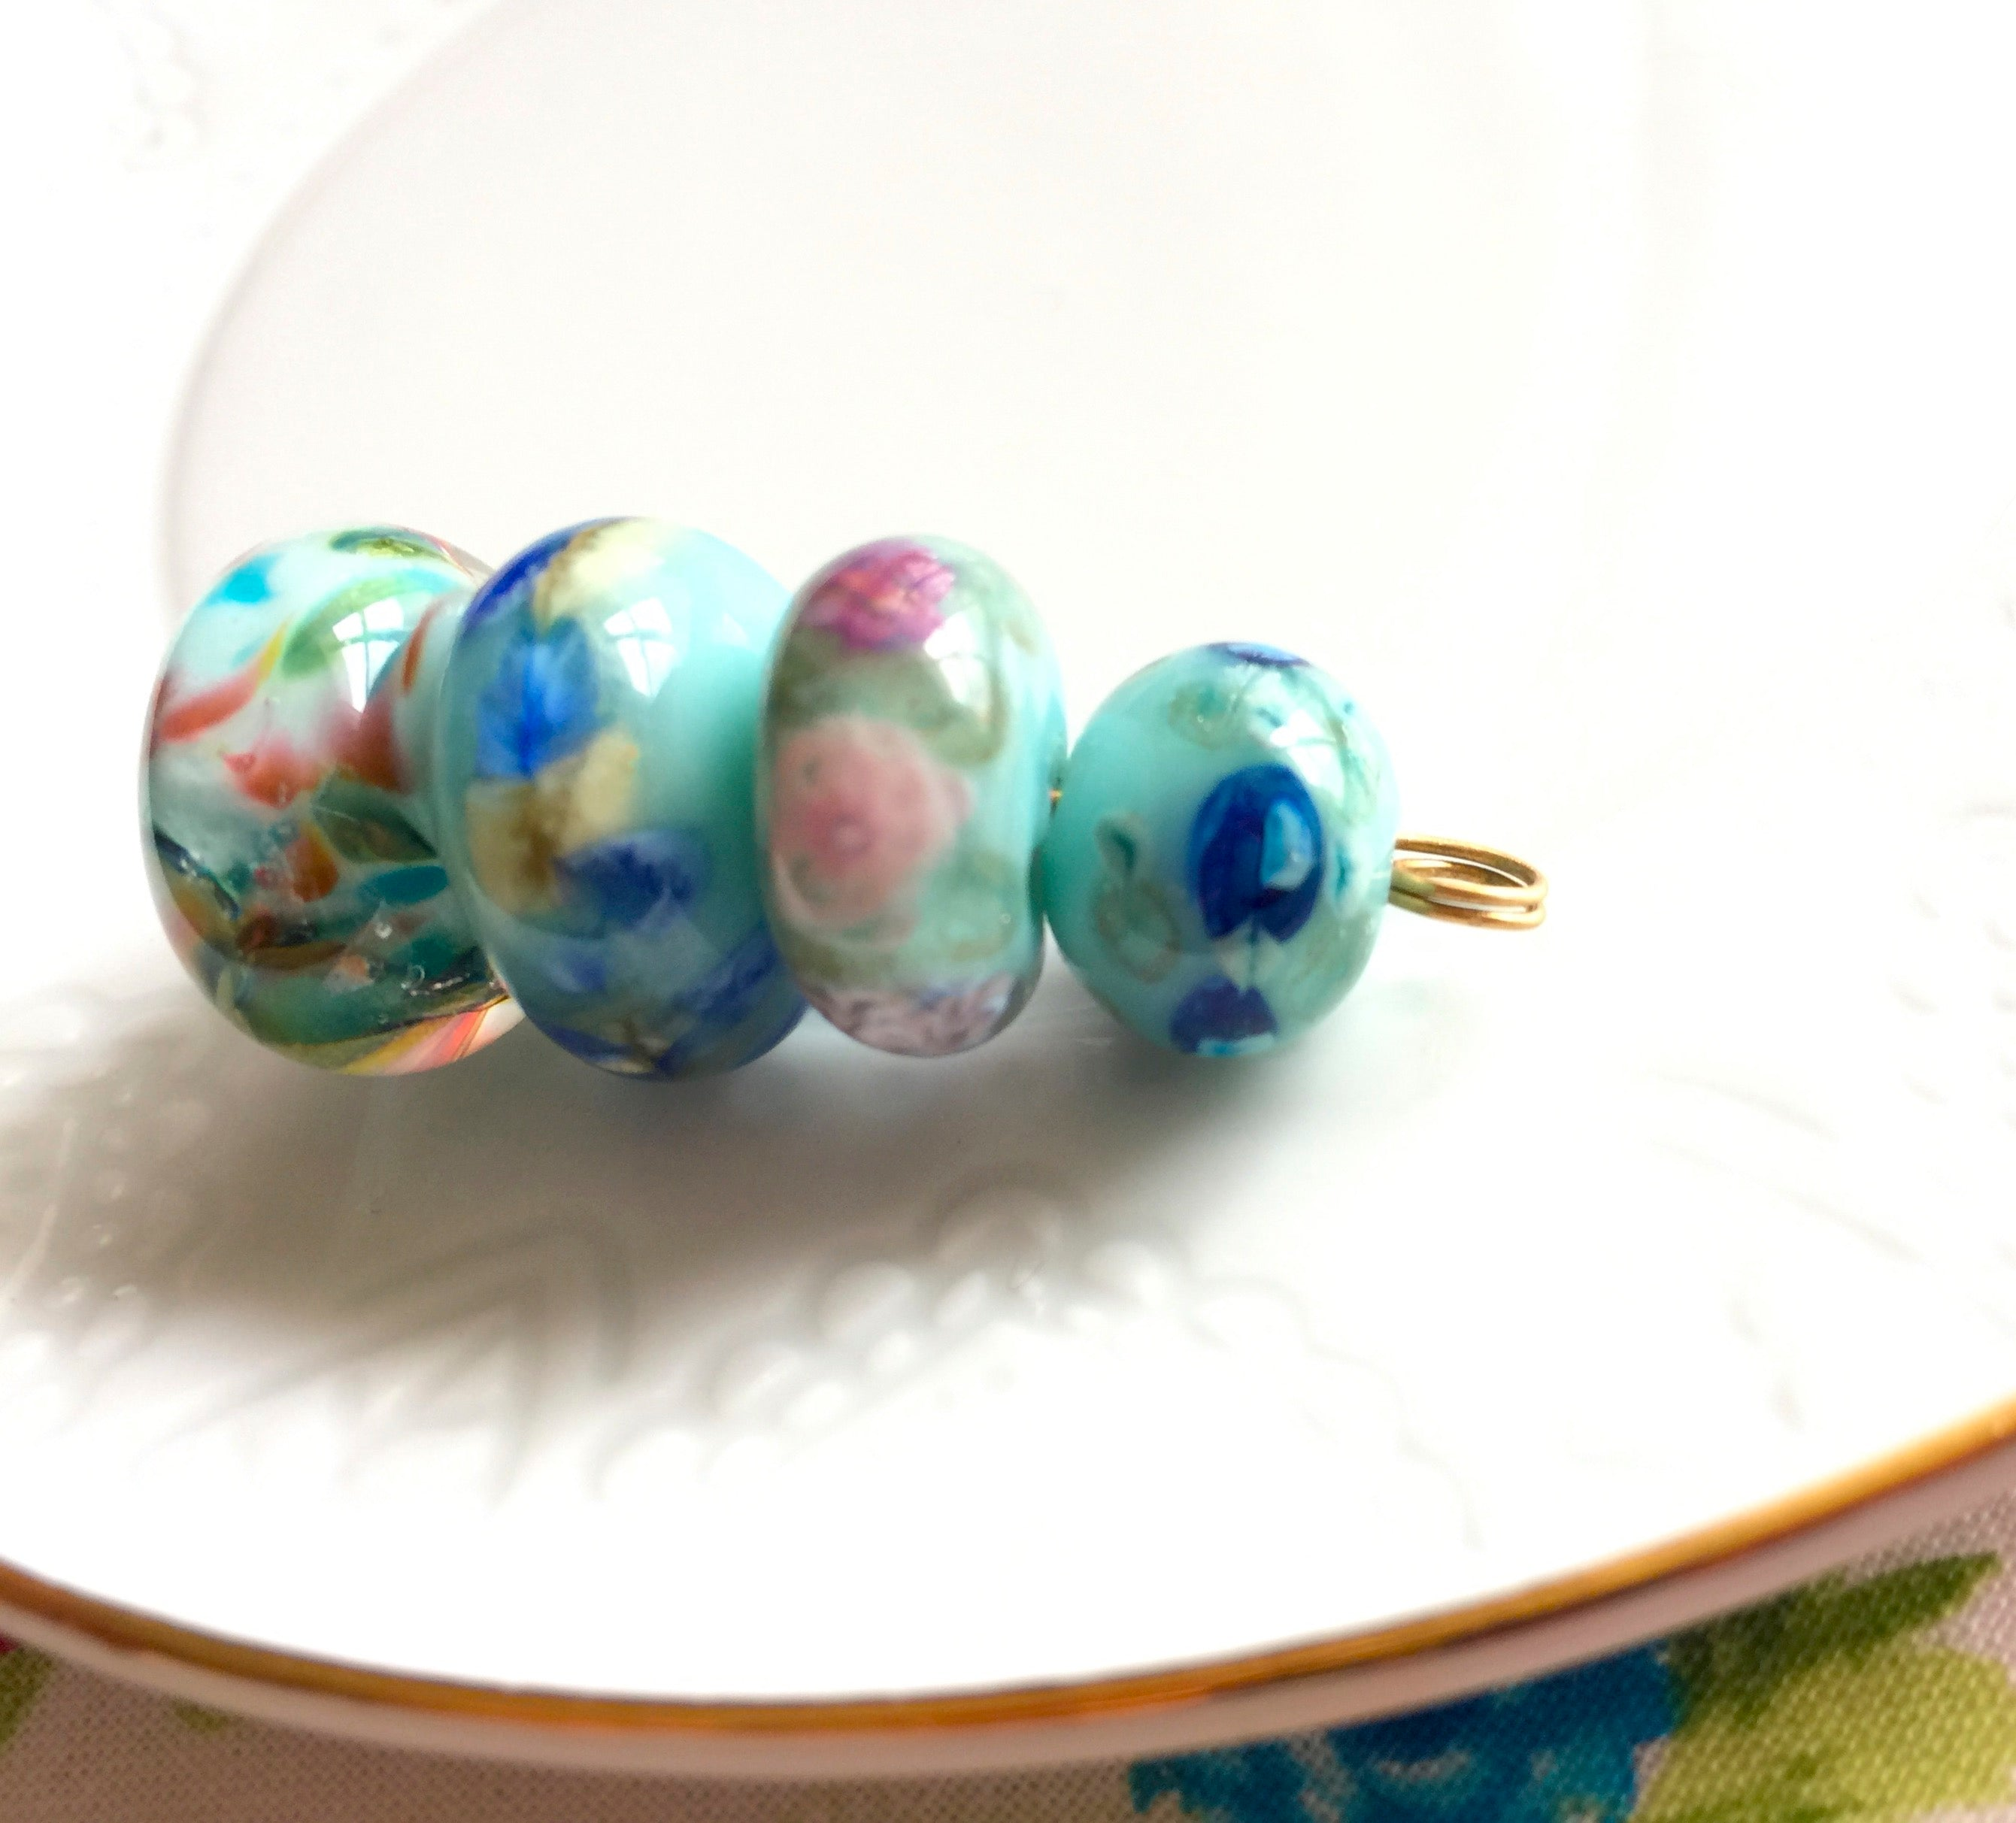 Set of 4 Handcrafted Lampwork Glass Beads in pretty light aqua blue with colorful spots, swirls, and floral embellishments.